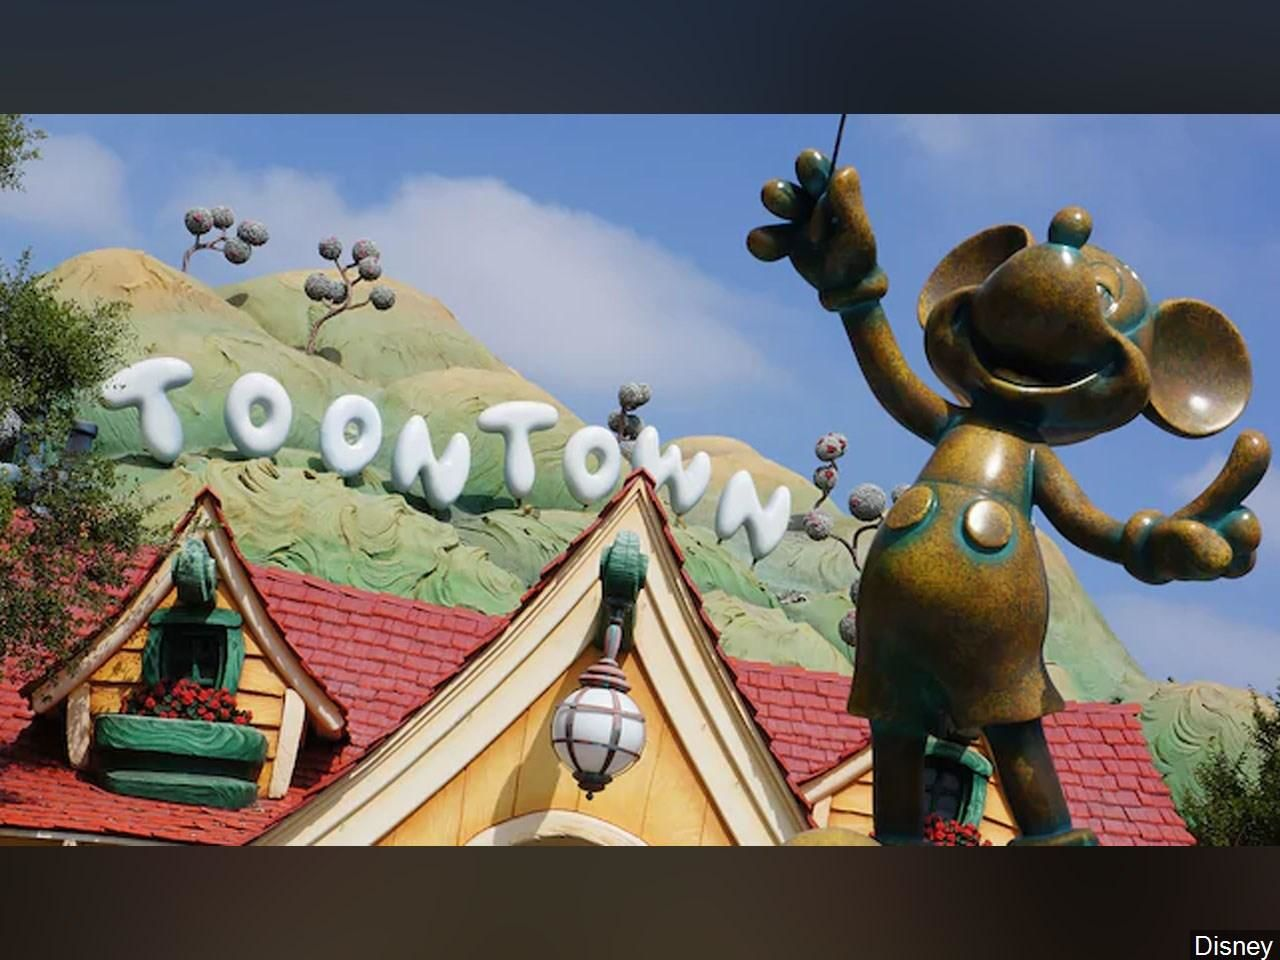 A family brawl broke out at Toontown in Disneyland and it was caught on camera. (Photo: Disney via MGN)